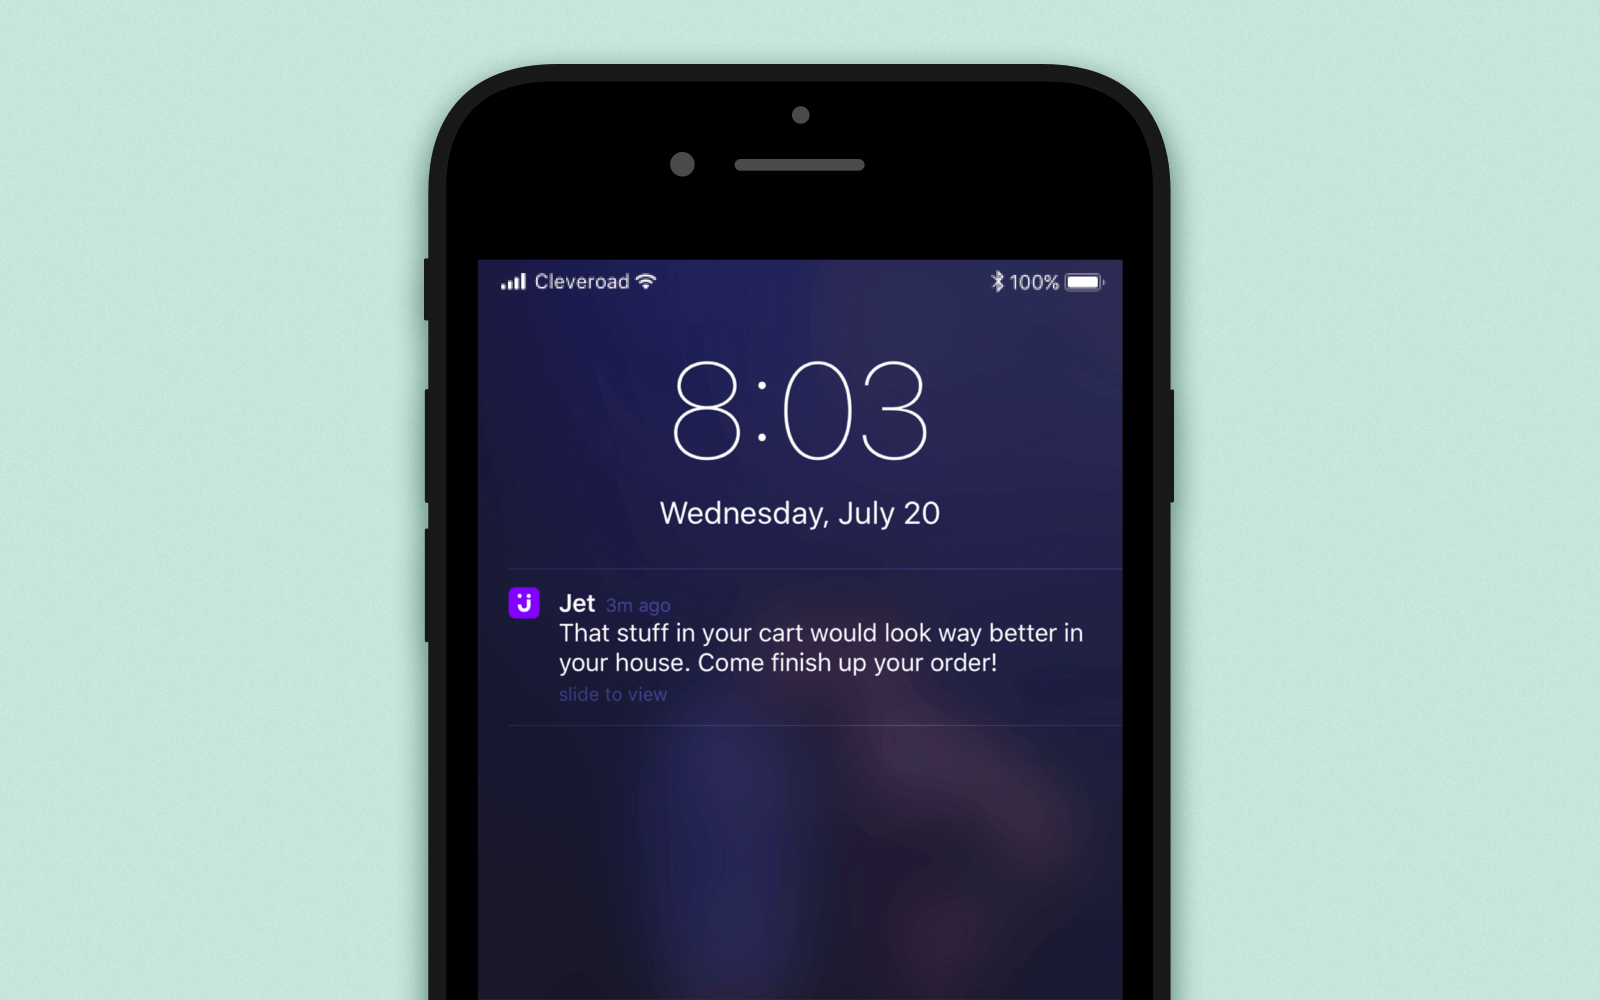 Build a shopping app with customization and flexible push notifications meeting your business objectives